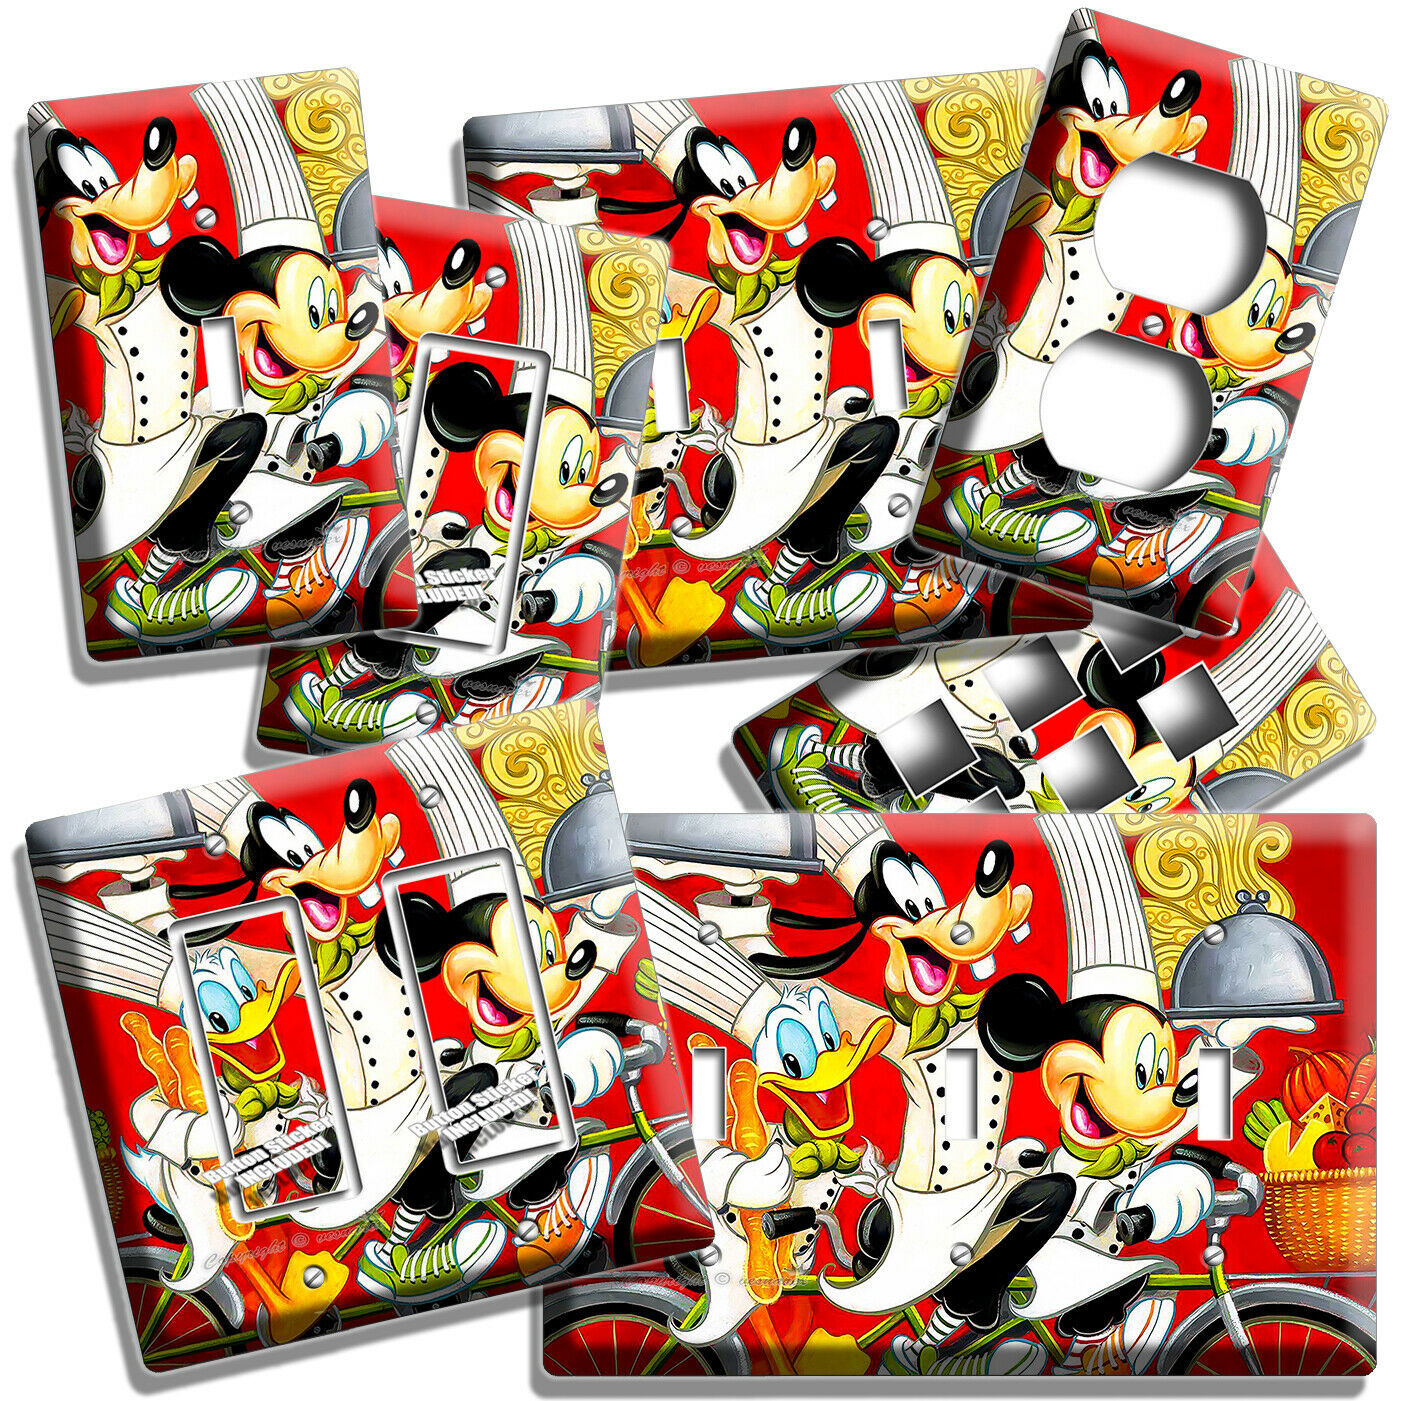 MICKEY MOUSE GOOFY DONALD DUCK CHEF LIGHT SWITCH OUTLET WALL PLATE KITCHEN DECOR